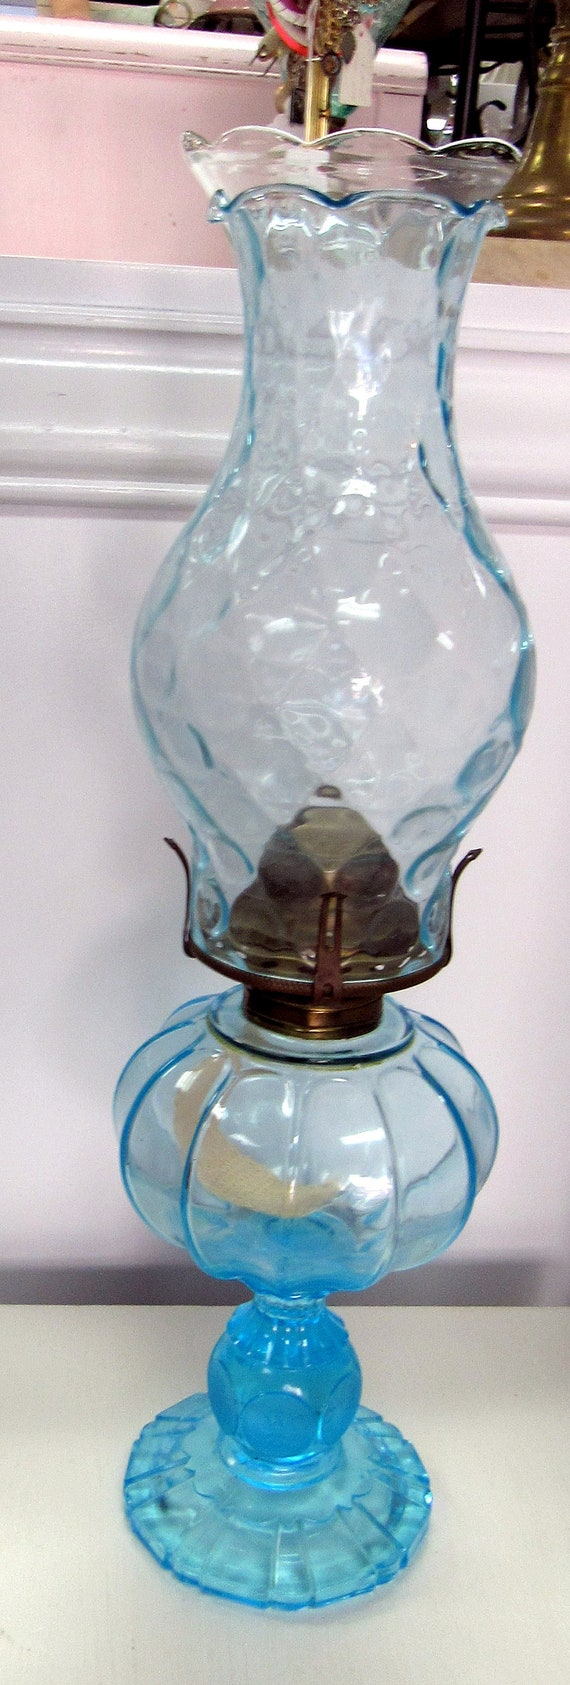 Antique blue oil lamp hurricane lamp pressed glass